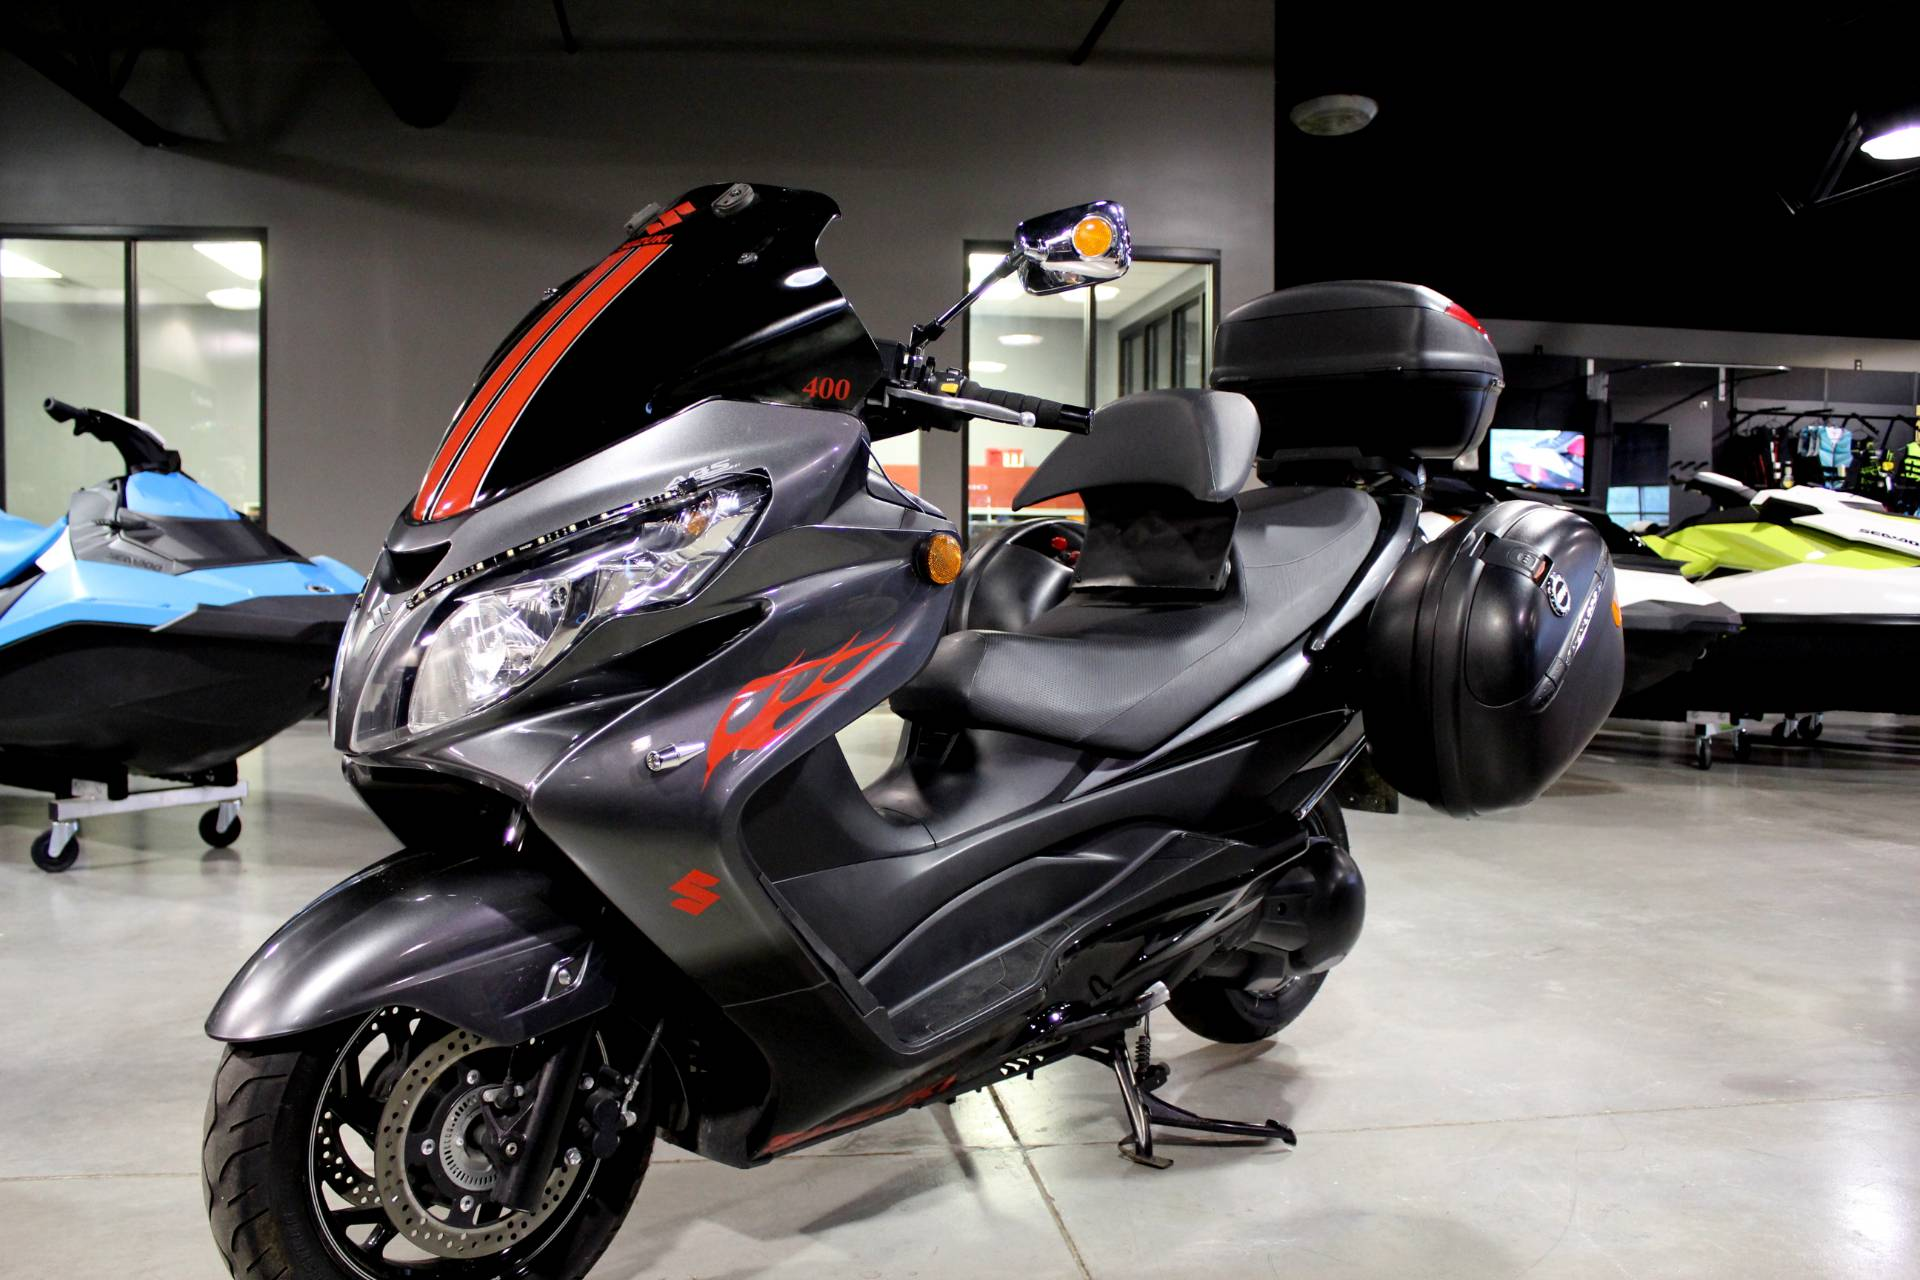 Used 2012 Suzuki Burgman™ 400 ABS Scooters in Batavia, OH | Stock ...